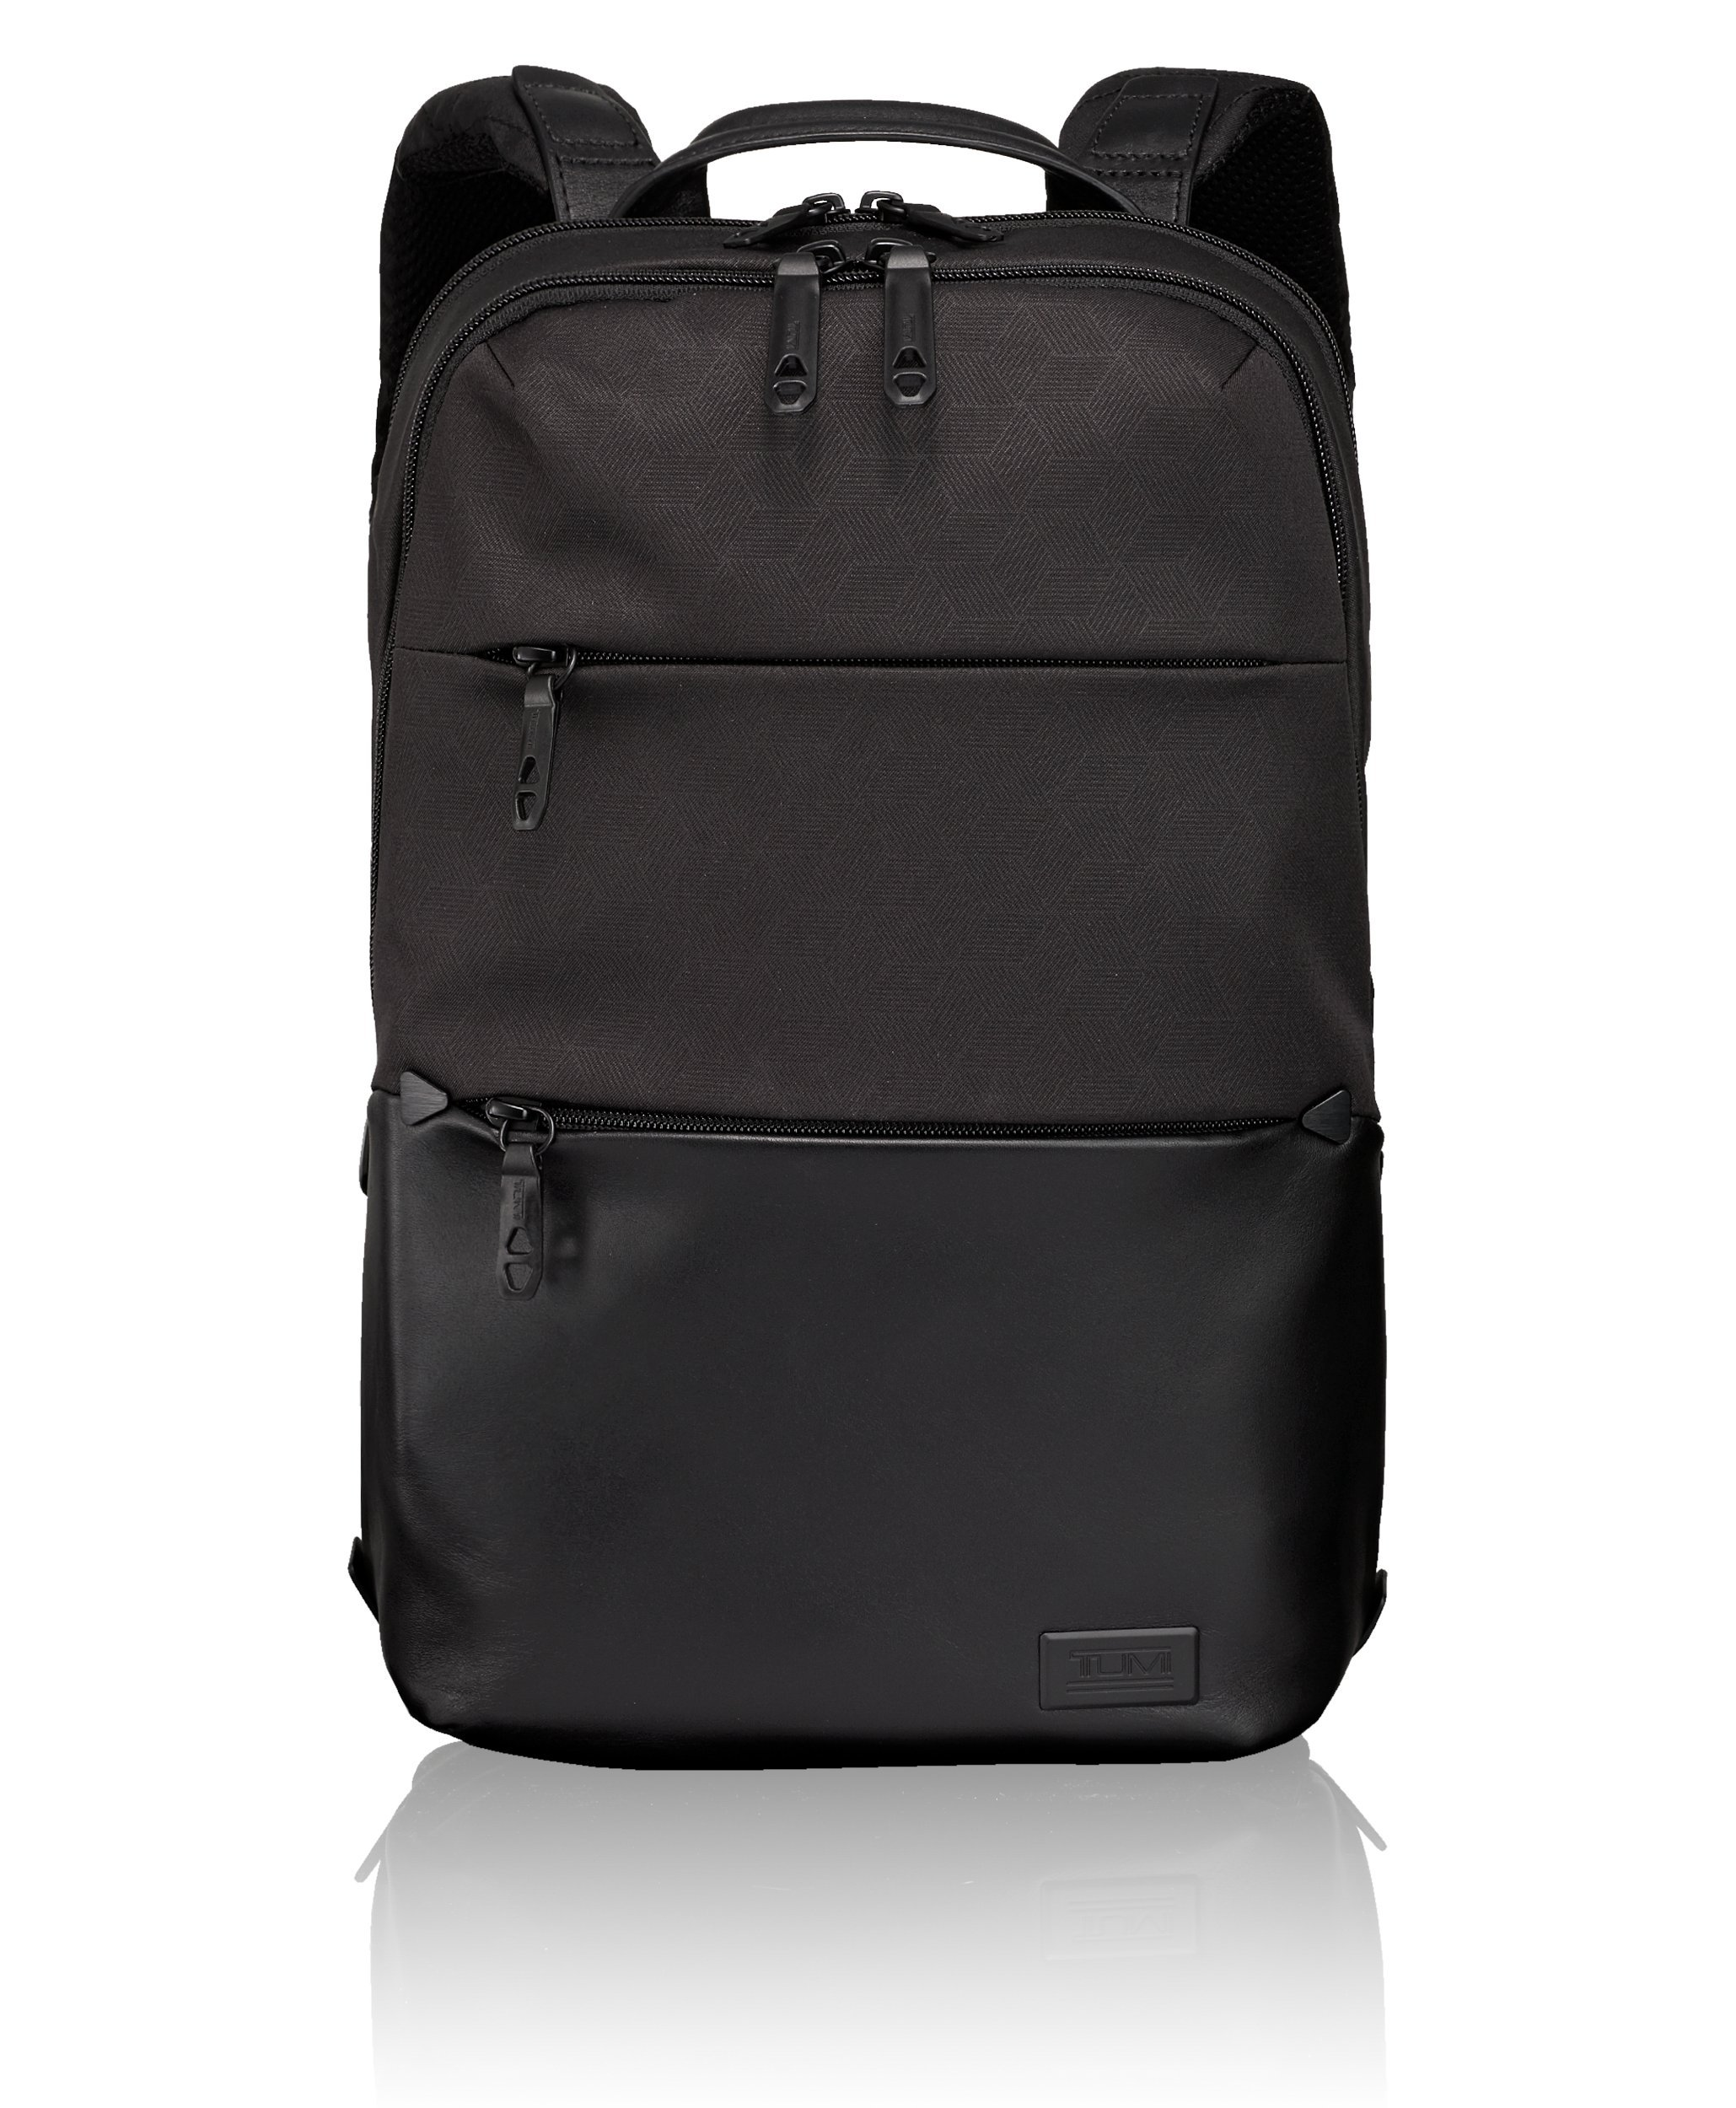 Tumi Tahoe Elwood Backpack, Black, One Size by Tumi